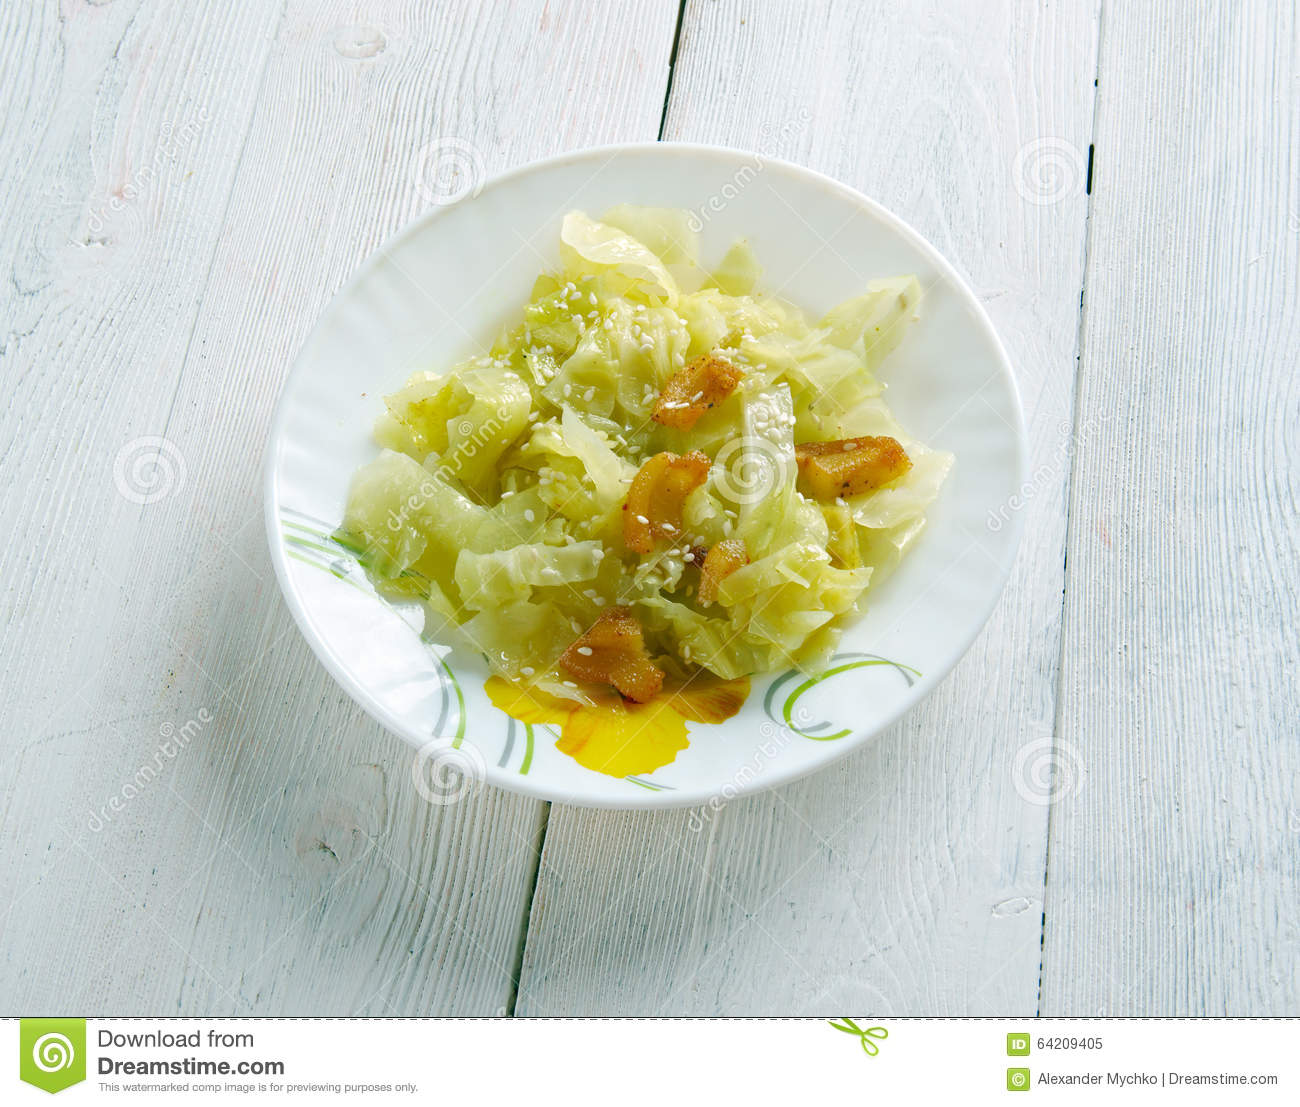 Fried Cabbage meridional